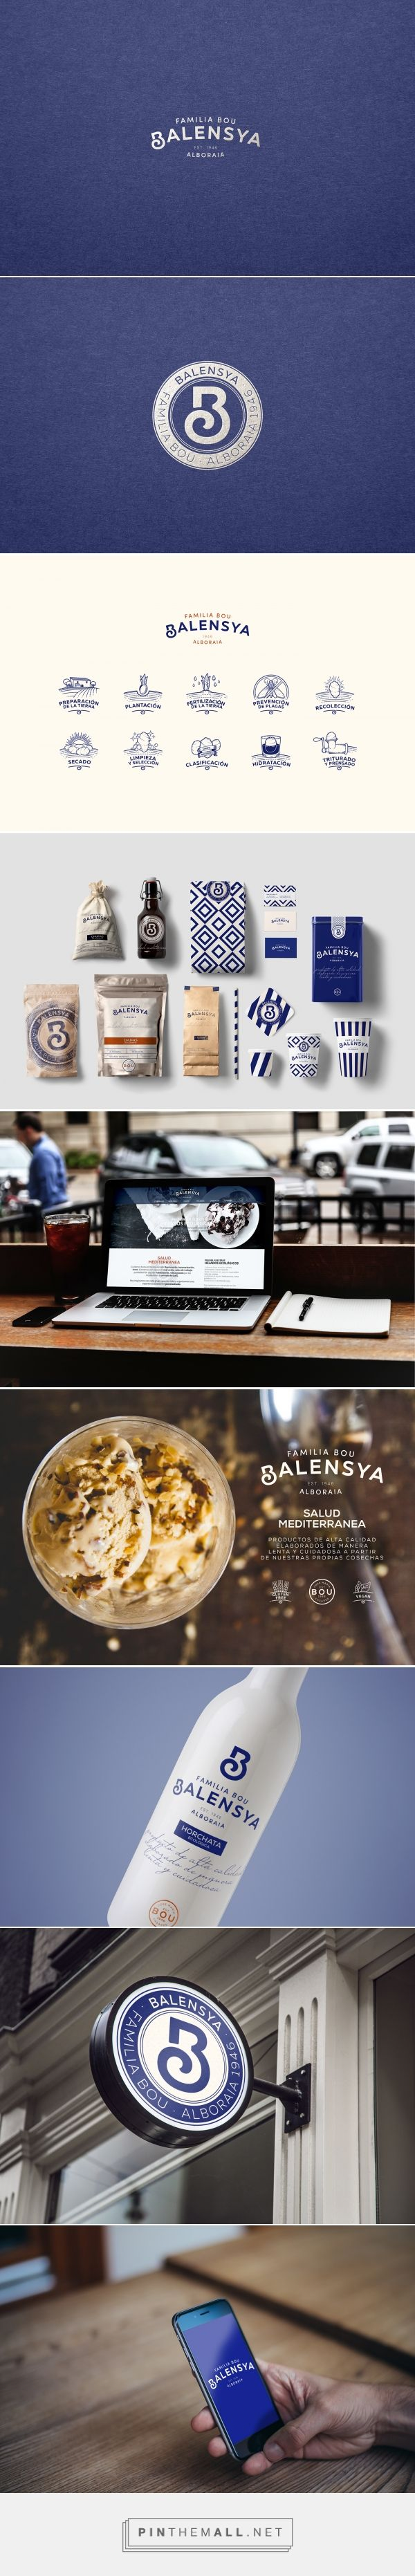 Balensya Specialty Food Products Branding and Packaging by Francisco Giner Calero | Fivestar Branding Agency – Design and Branding Agency & Curated Inspiration Gallery